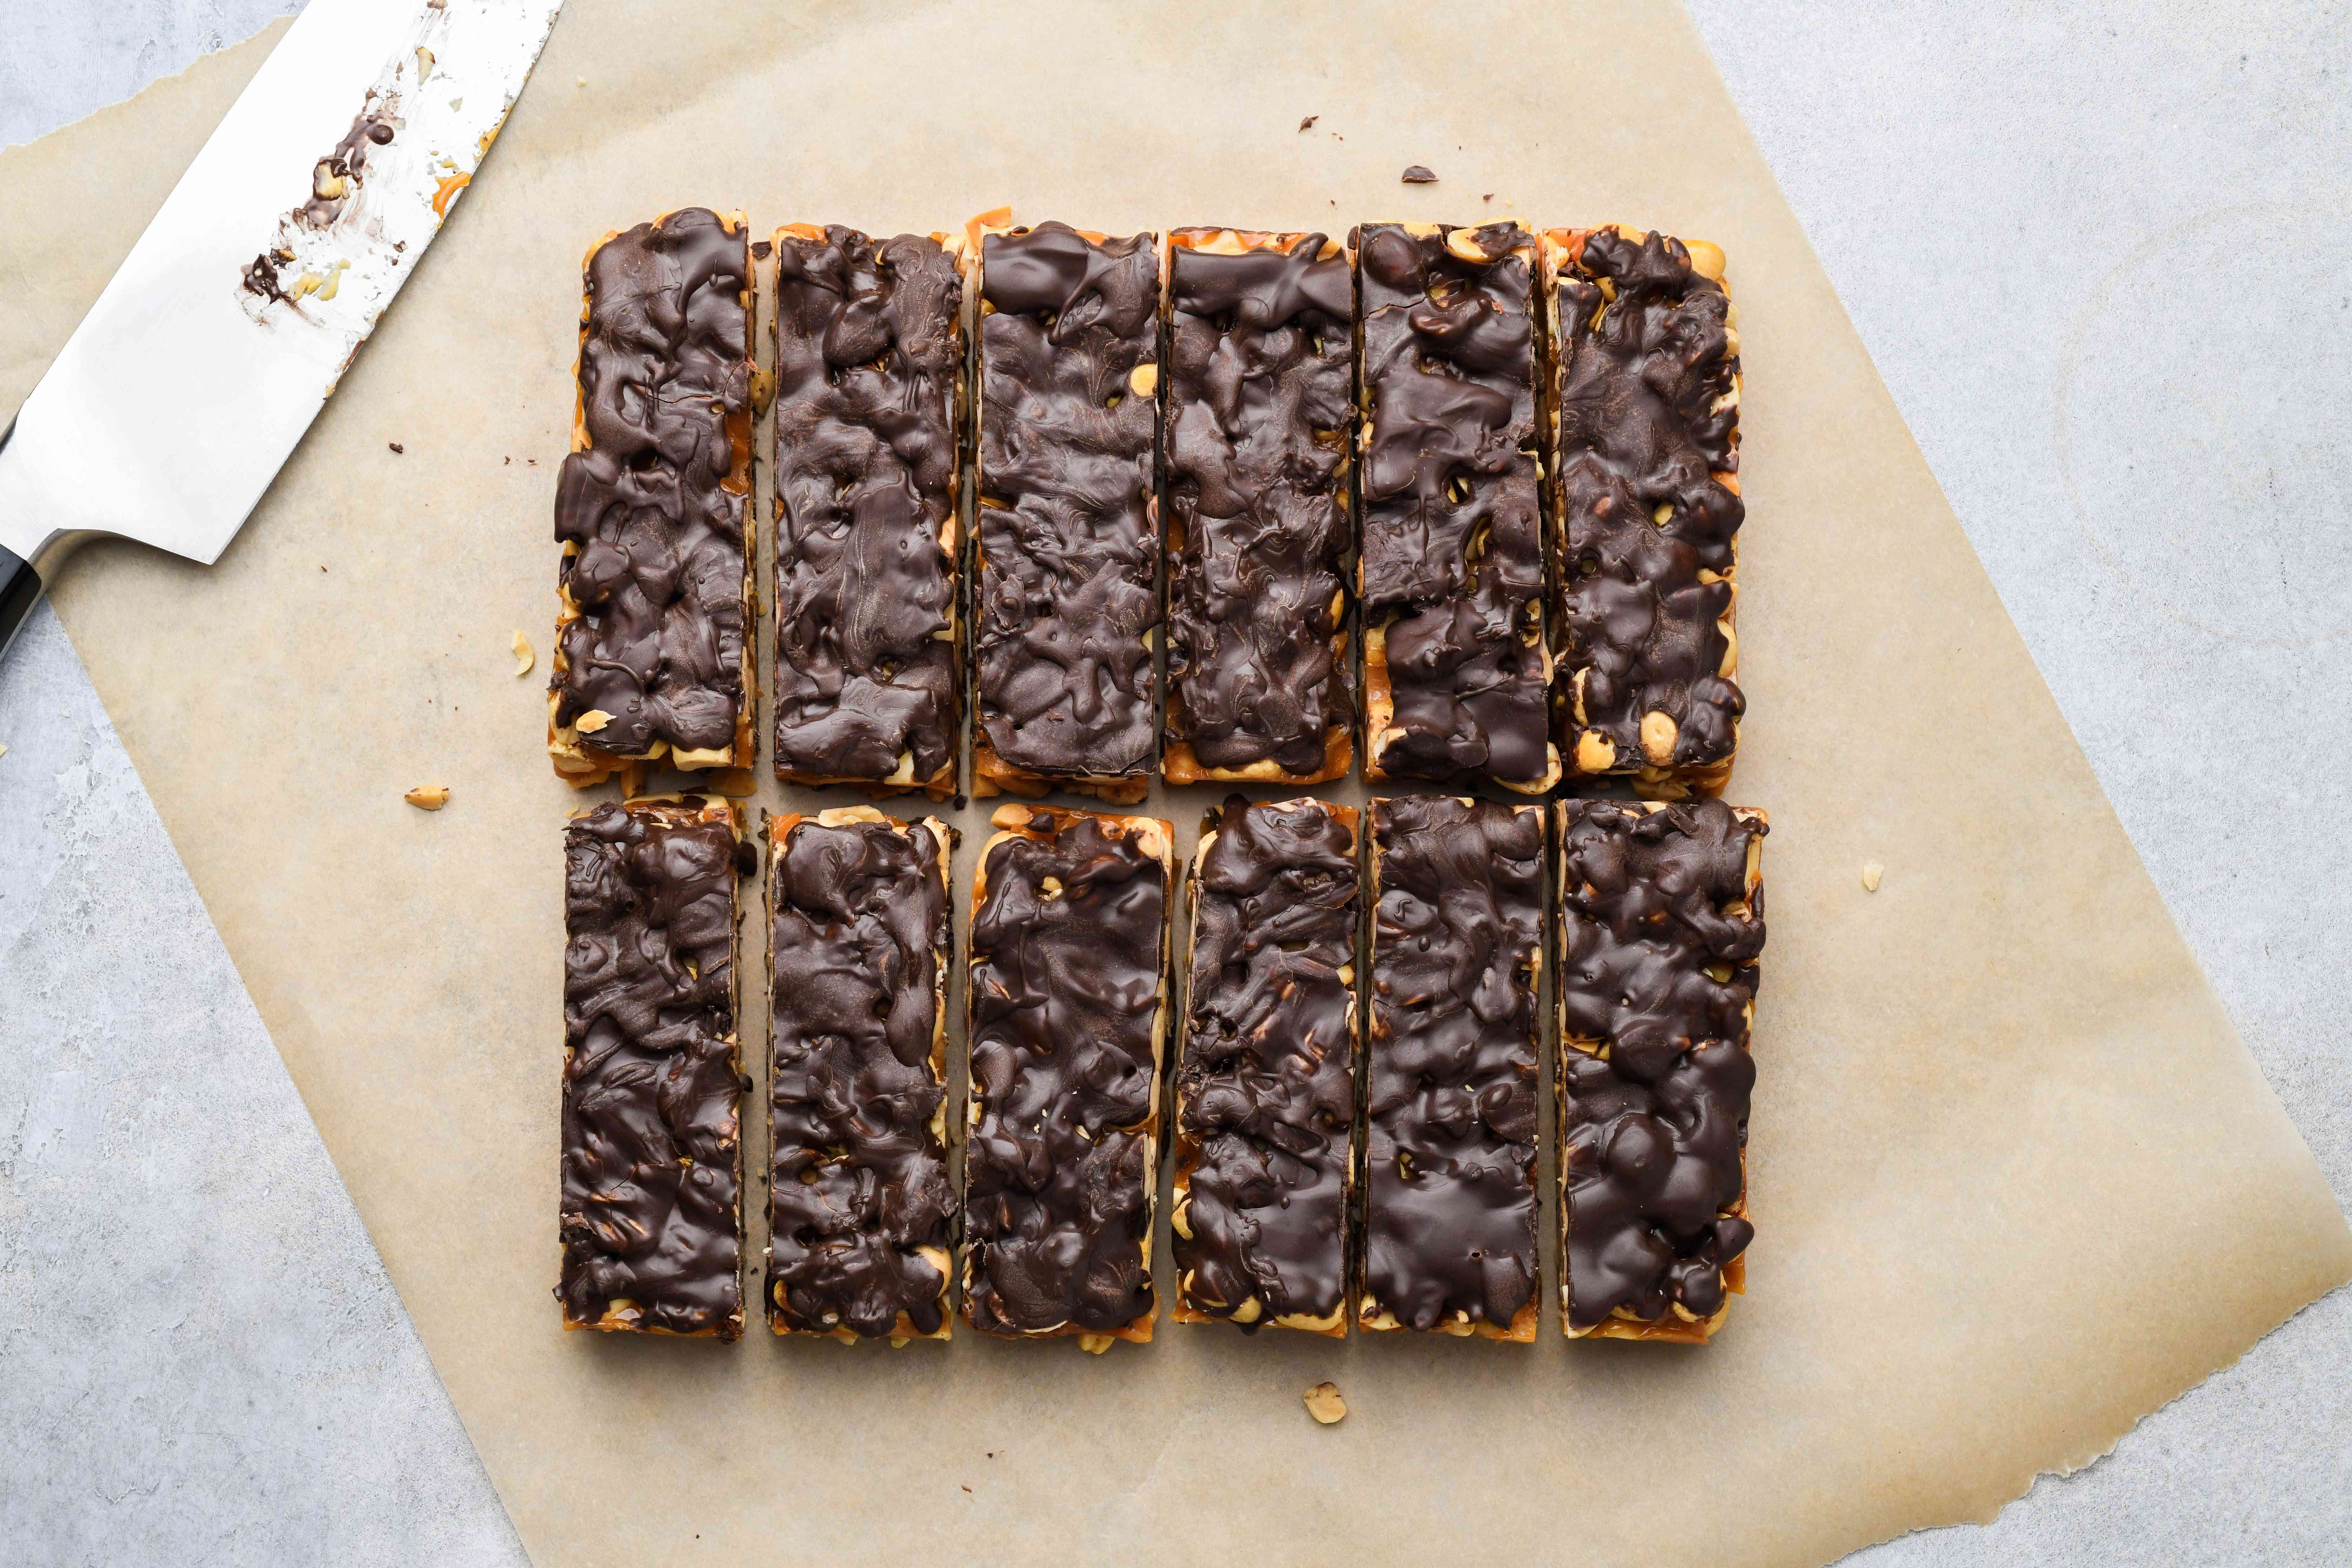 Cut the candy into bars once the chocolate is set on both sides